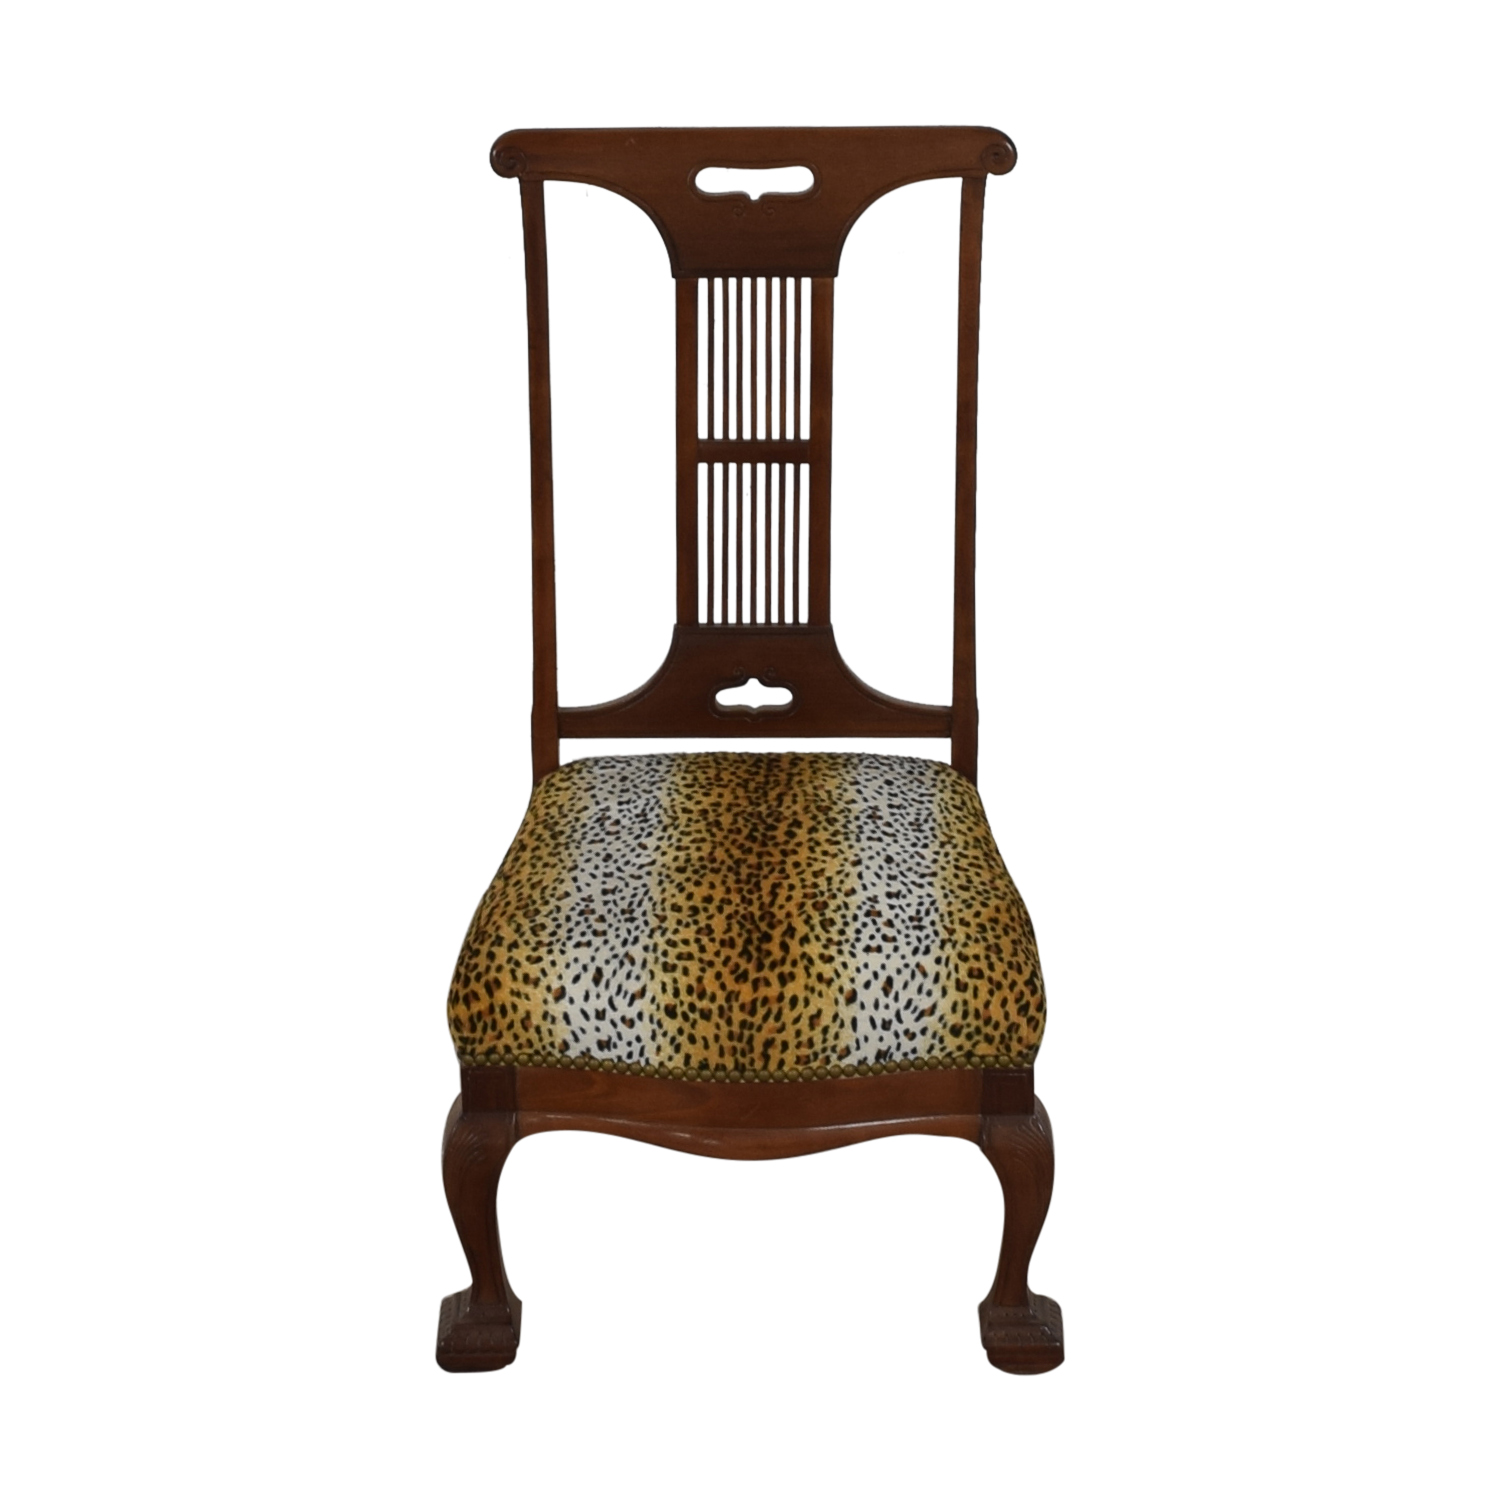 buy Furniture Masters Furniture Masters Leopard Upholstered Wood Dining Chair online